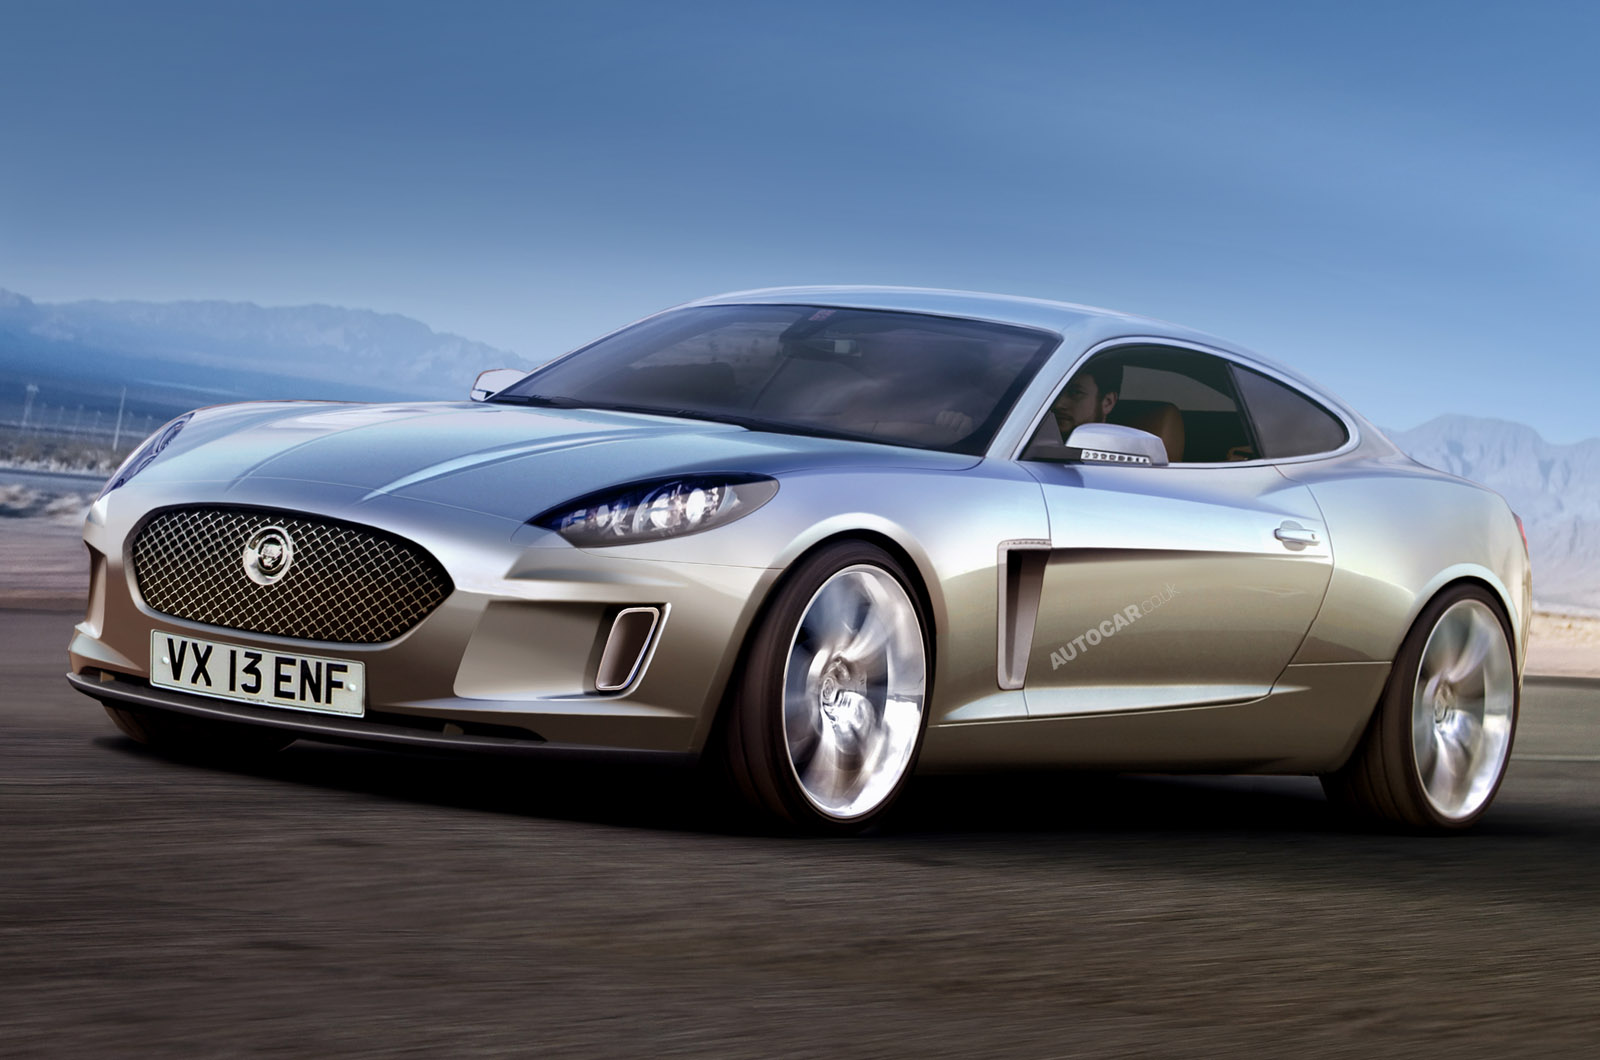 High Quality New Jaguar XK Exclusive | Autocar Awesome Ideas